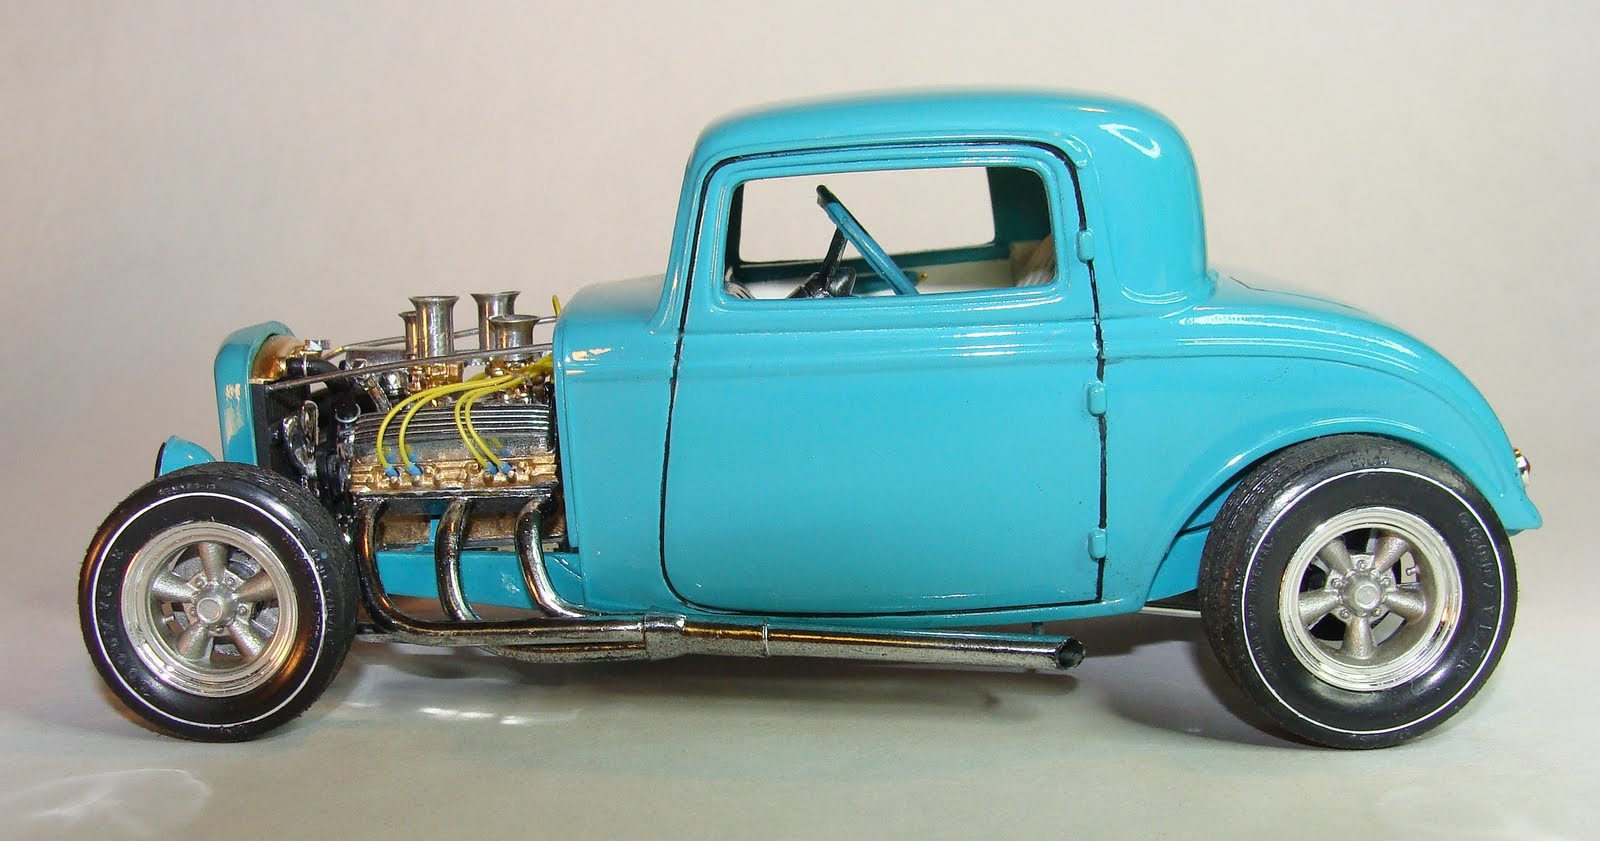 Modelcarscom revell 1932 ford 5 window coupe model kit for 1932 5 window coupe kit cars